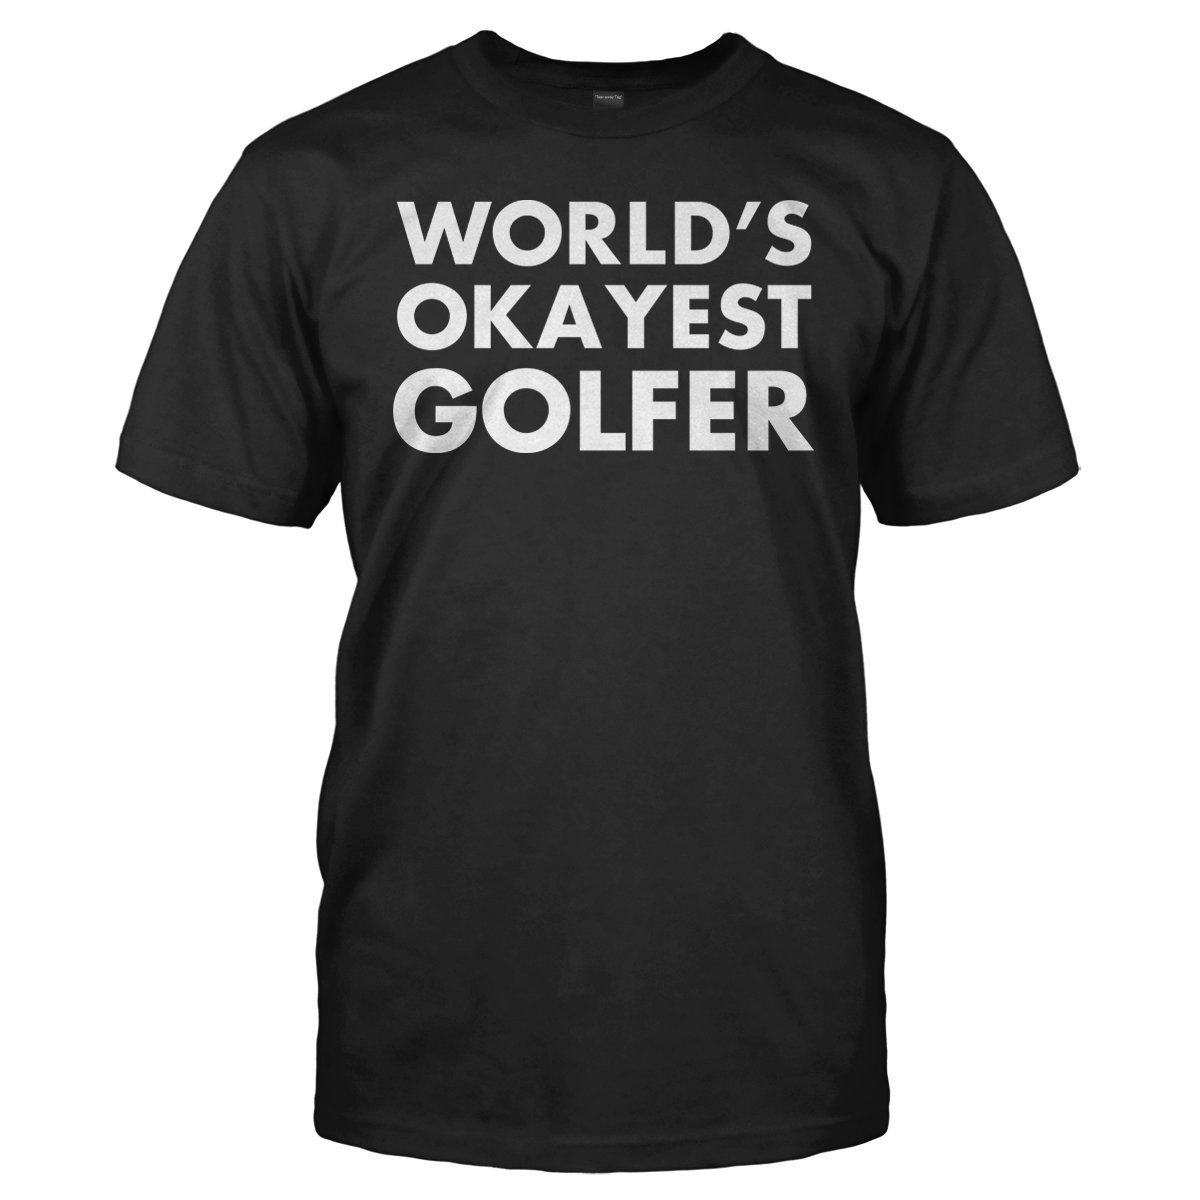 World's Okayest Golfer - T Shirt